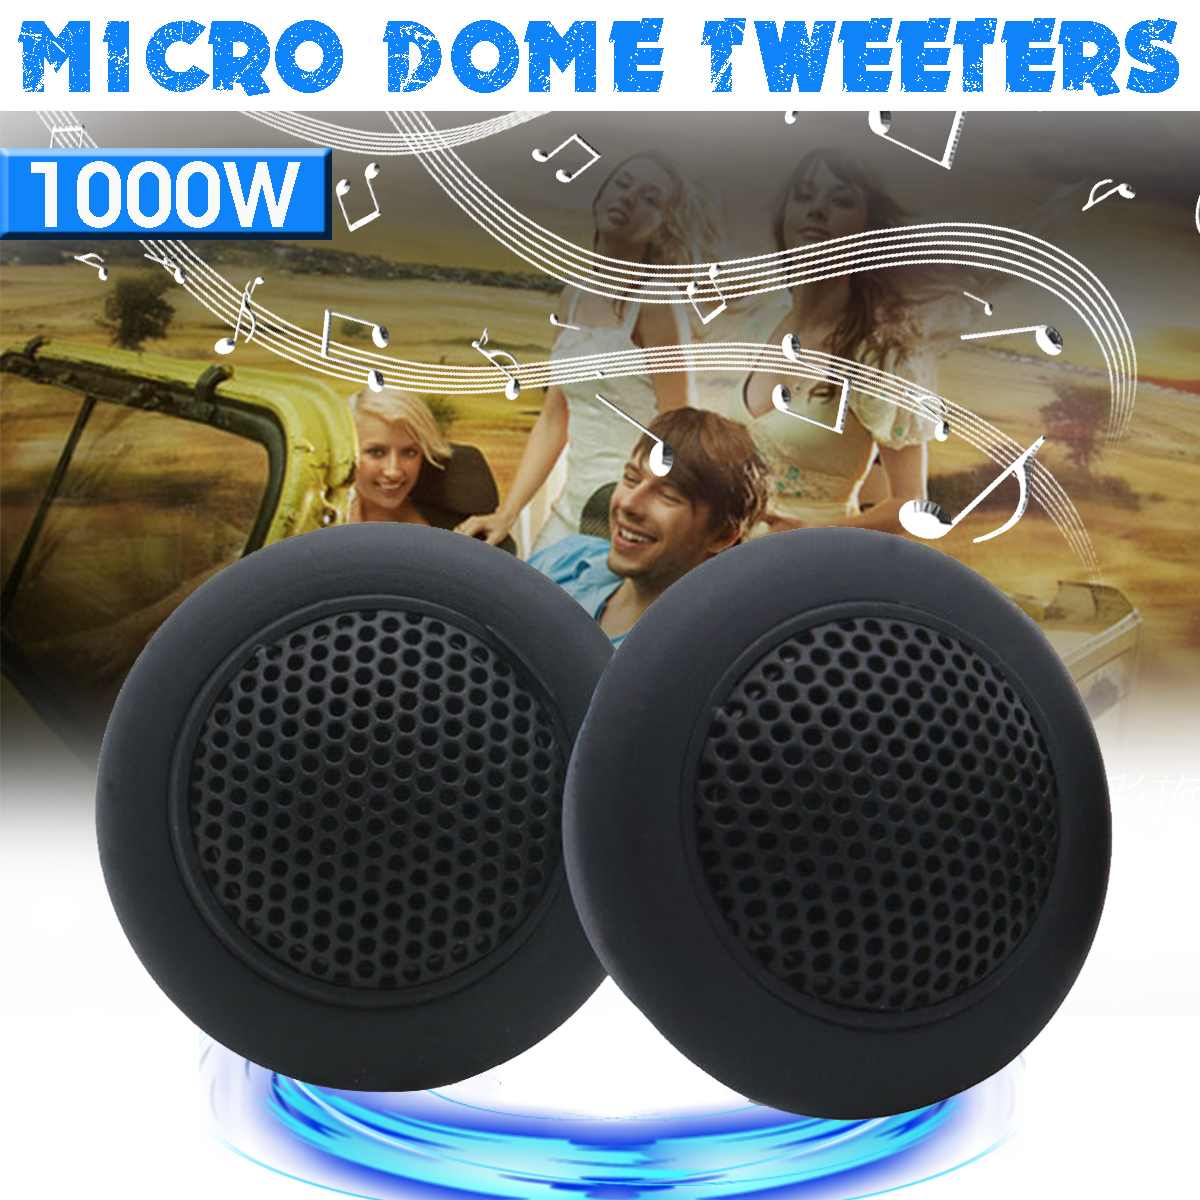 12V-24V 1Pair HIFI Micro Dome Tweeters 89db <font><b>Car</b></font> <font><b>Audio</b></font> Music <font><b>Speakers</b></font> Automobile Horn Loudspeaker Stereo Treble Tweeters <font><b>Speaker</b></font> image